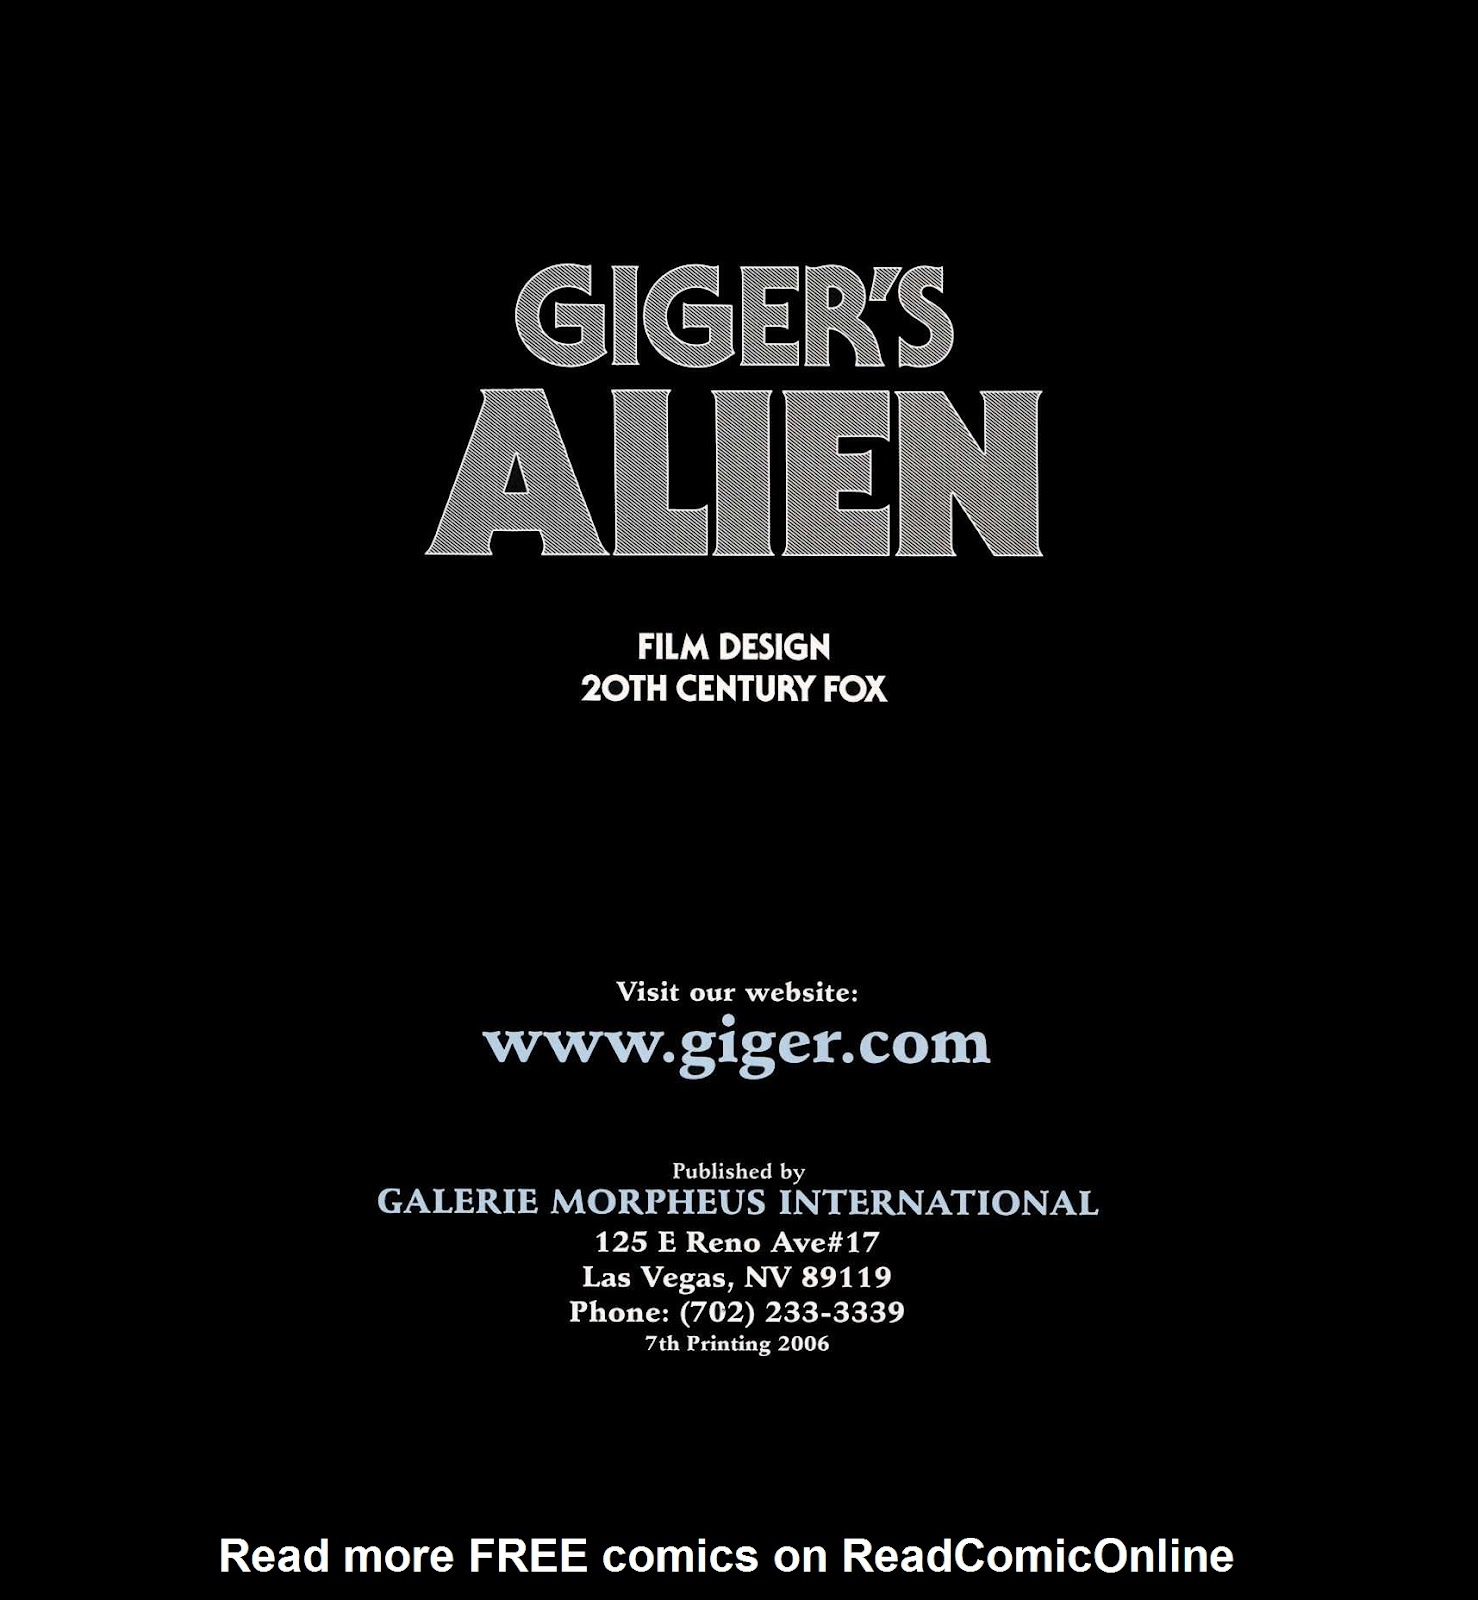 Read online Giger's Alien comic -  Issue # TPB - 3